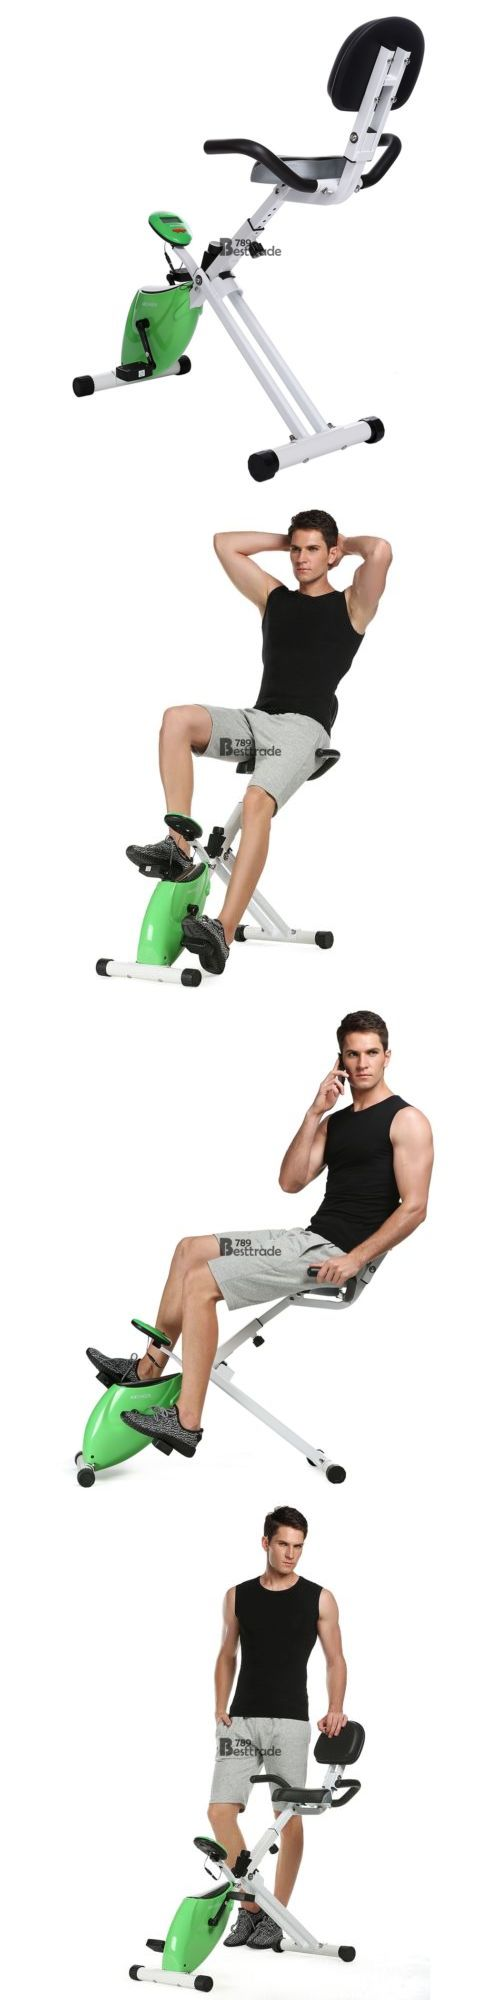 Stair Machines and Steppers 28062: New Folding Exercise Bike Magnetic Trainer Stationary Upright Bike 220Lbs Bt7e01 -> BUY IT NOW ONLY: $115.87 on eBay!